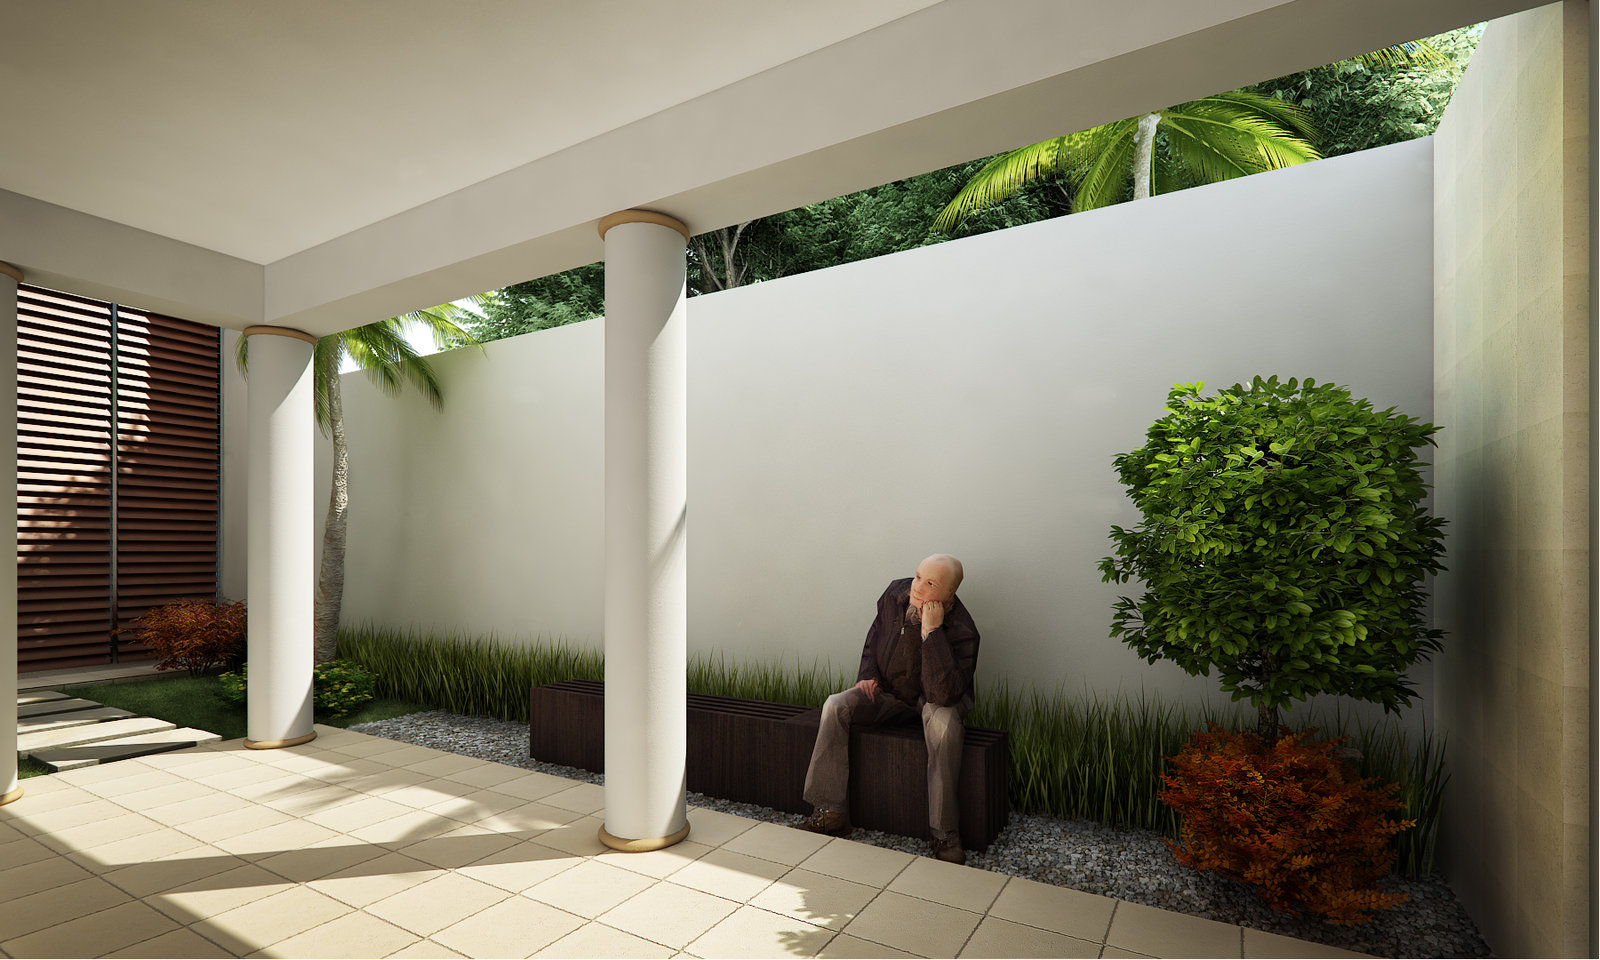 Courtyard design and landscaping ideas for Home interior garden